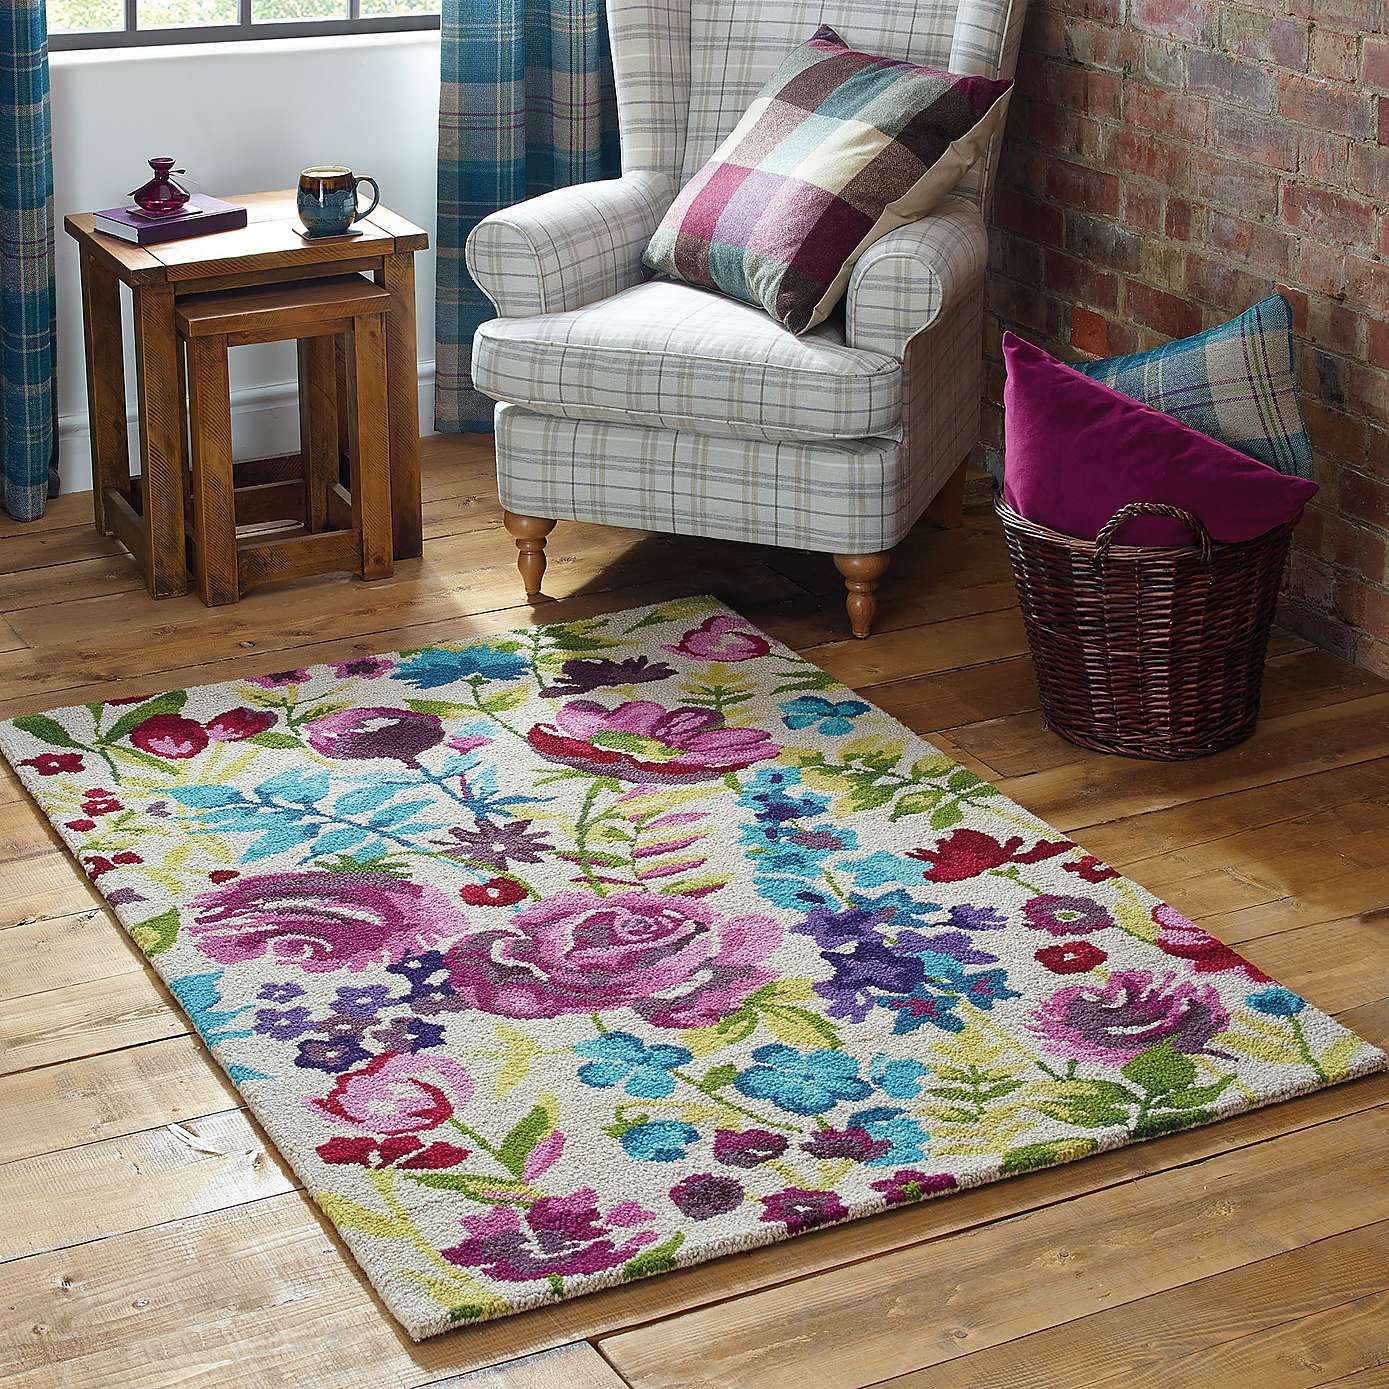 large kitchen rugs stone outdoor misty floral wool rug dunelm carpet etc